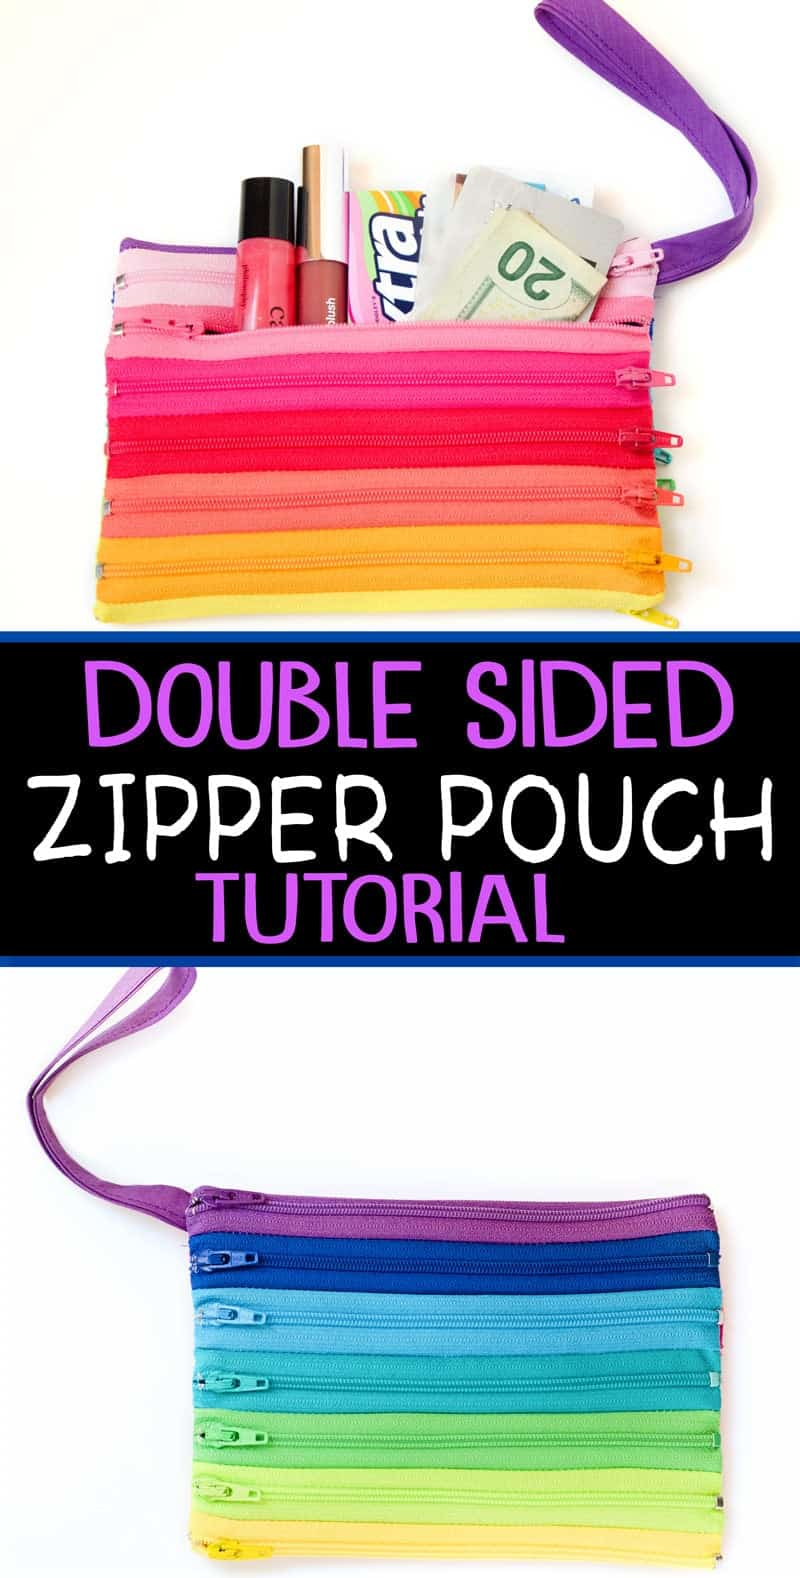 Got zippers? Make this darling Rainbow zipper pouch with this easy zipper pouch tutorial!